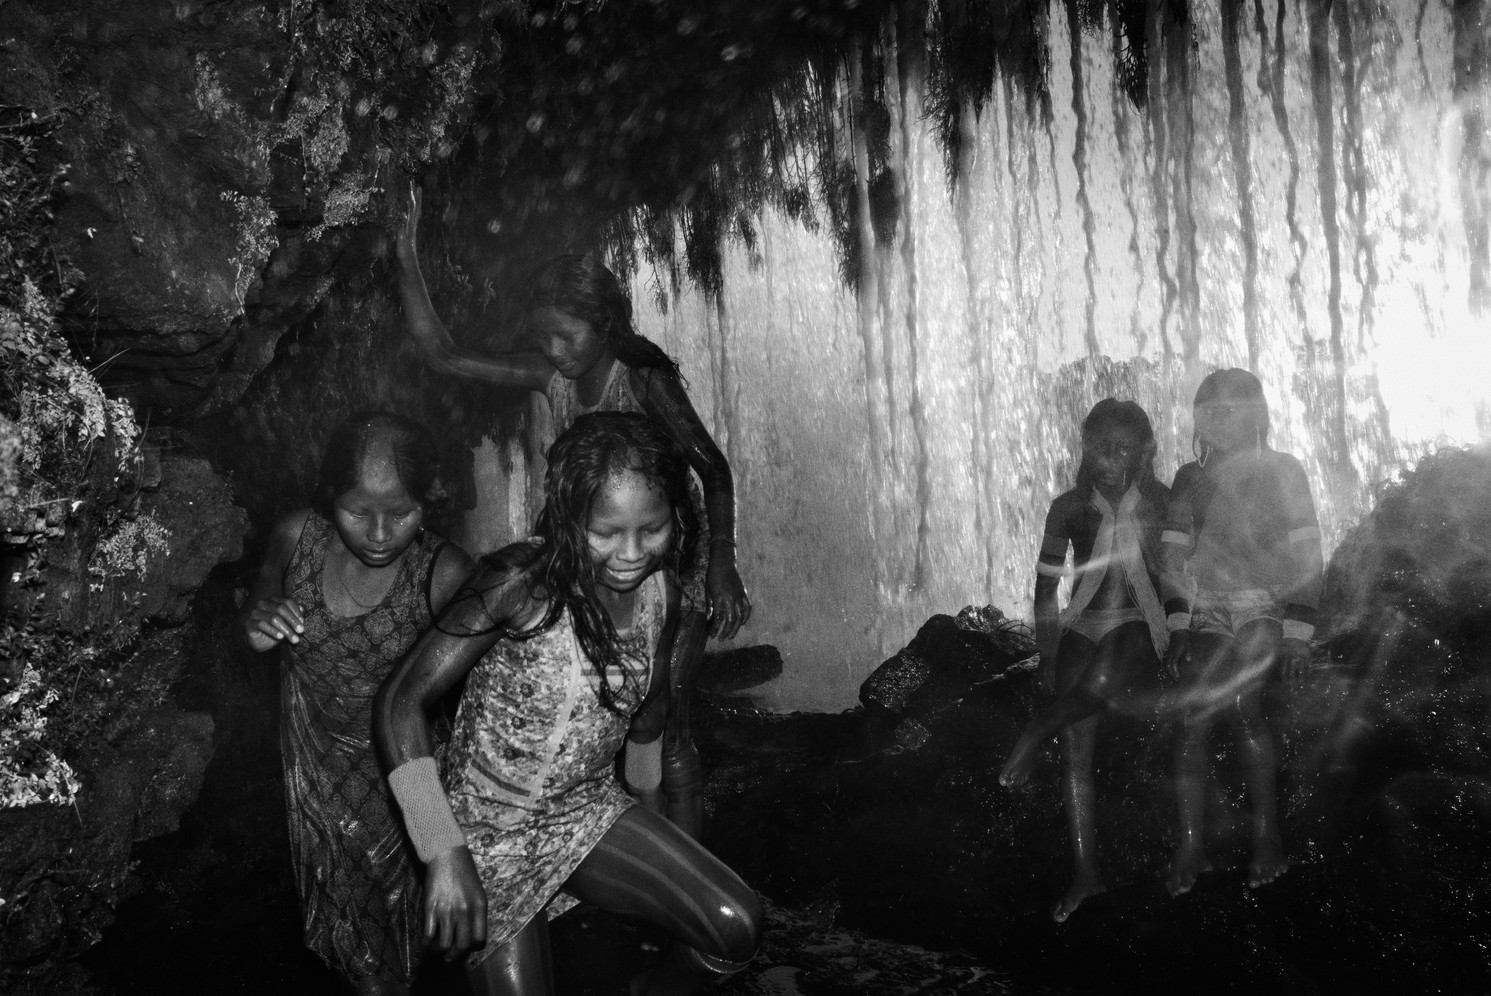 Kayapo children play behind a waterfall in the Kubenkrãnken indigenous village, in southern Pará state. The Kayapo have only been in contact with non-indigenous society since the 1960s. Their land serves as a crucial barrier to deforestation advancing from the south.